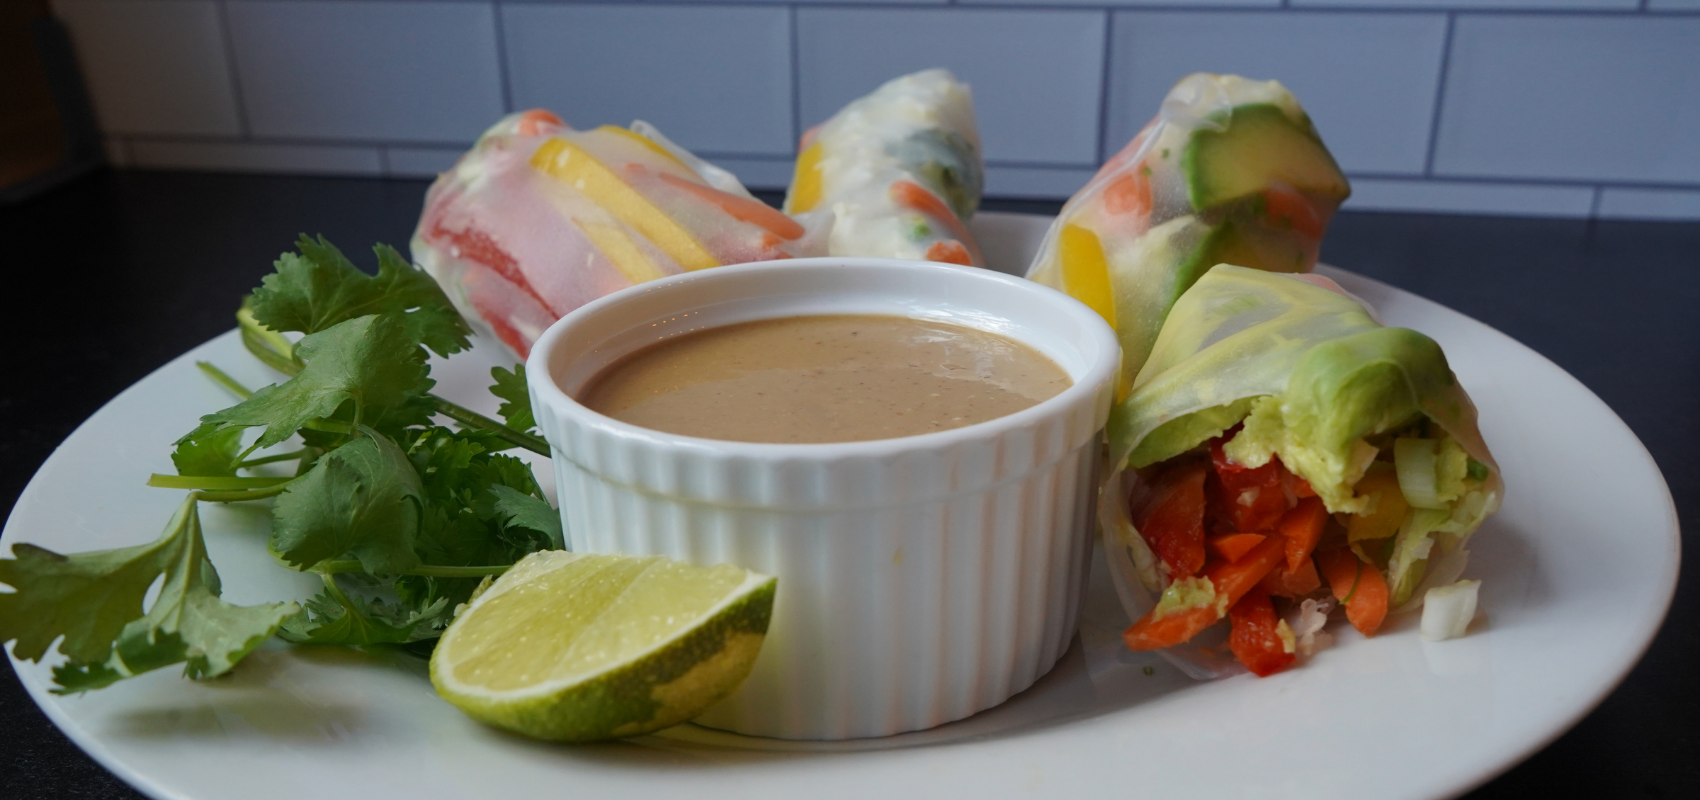 Making Spring Rolls (We Can Do Hard Things)